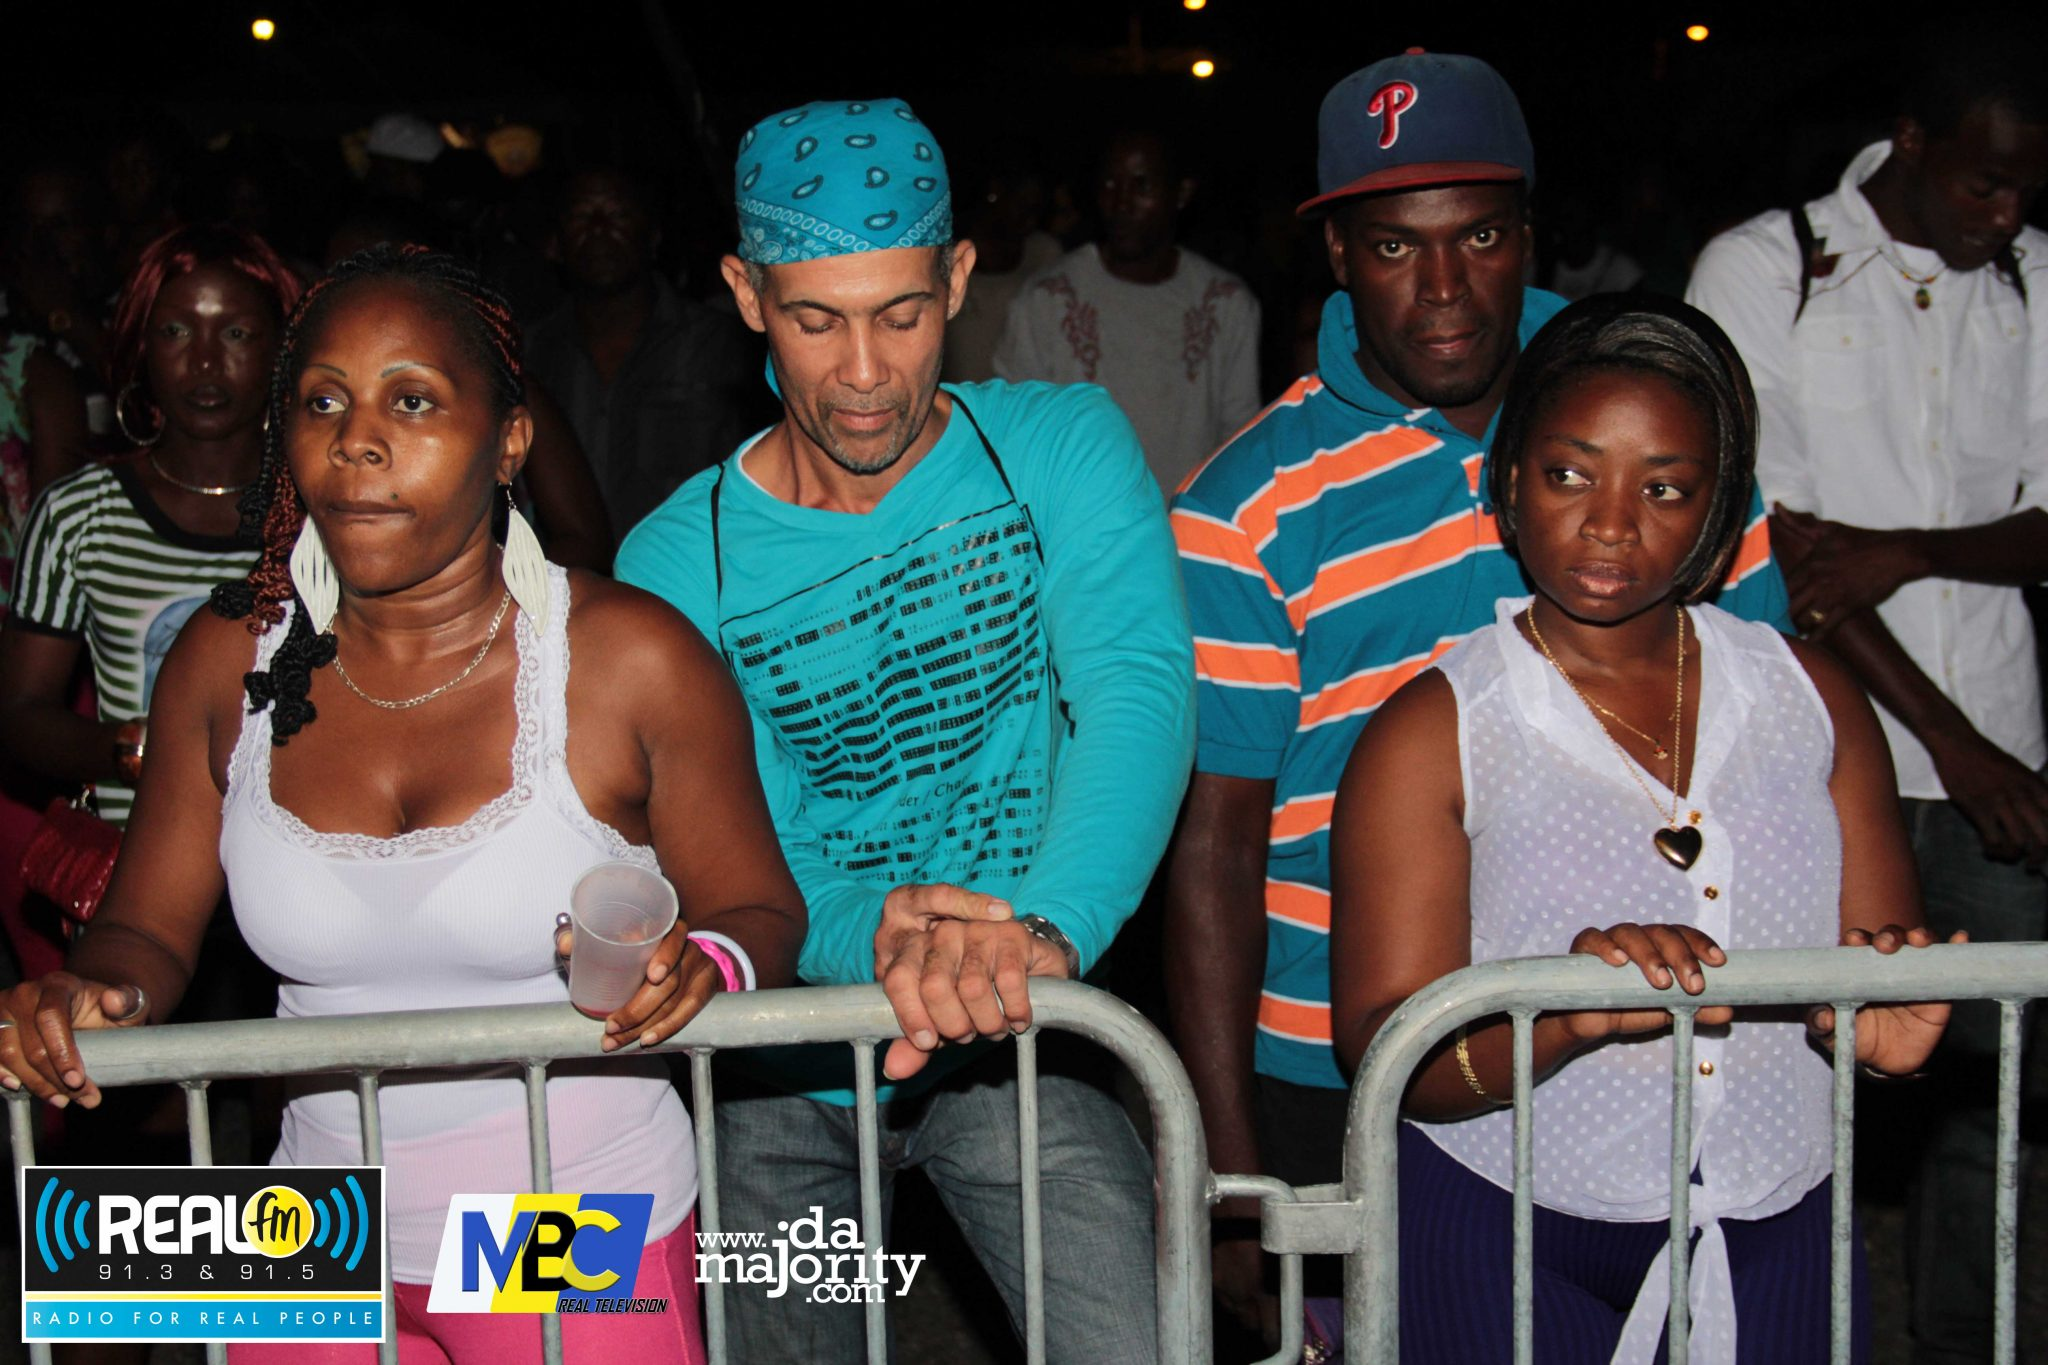 2 Lucian Girls clash at Aidonia Concert @Real 91.3fm & MBC Tv